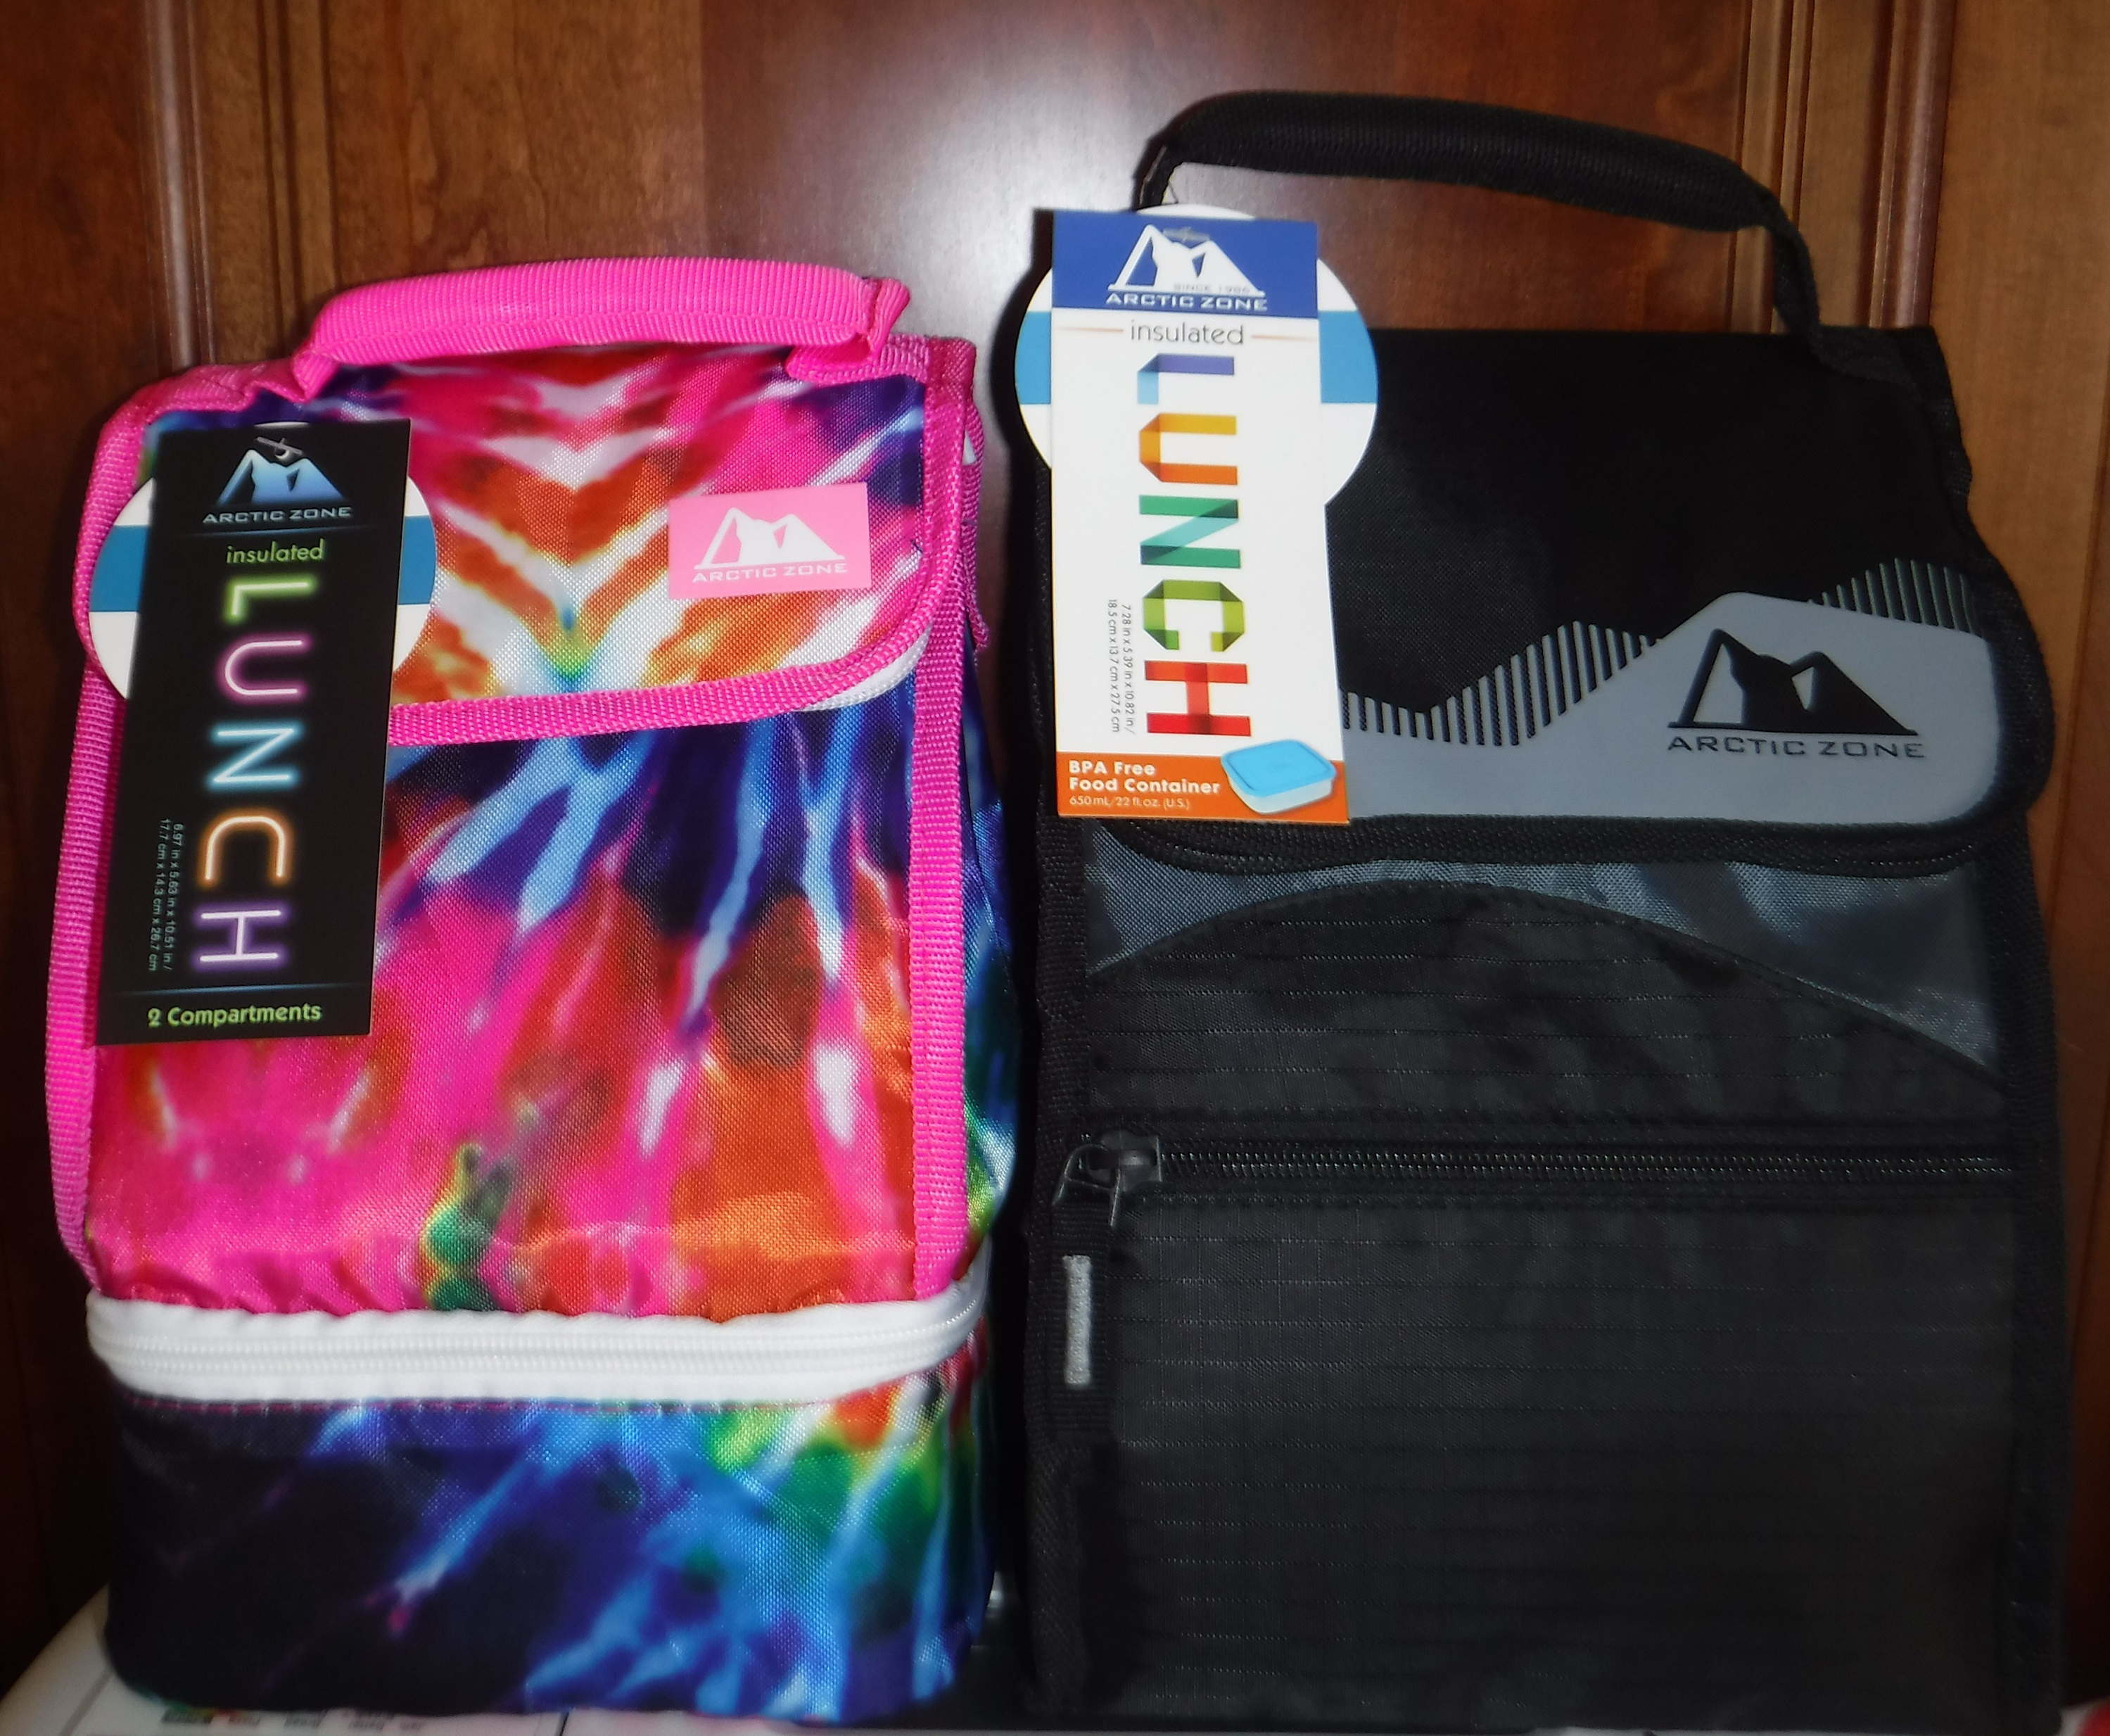 Photo I took of the two lunch bags I hope to sell on ebay